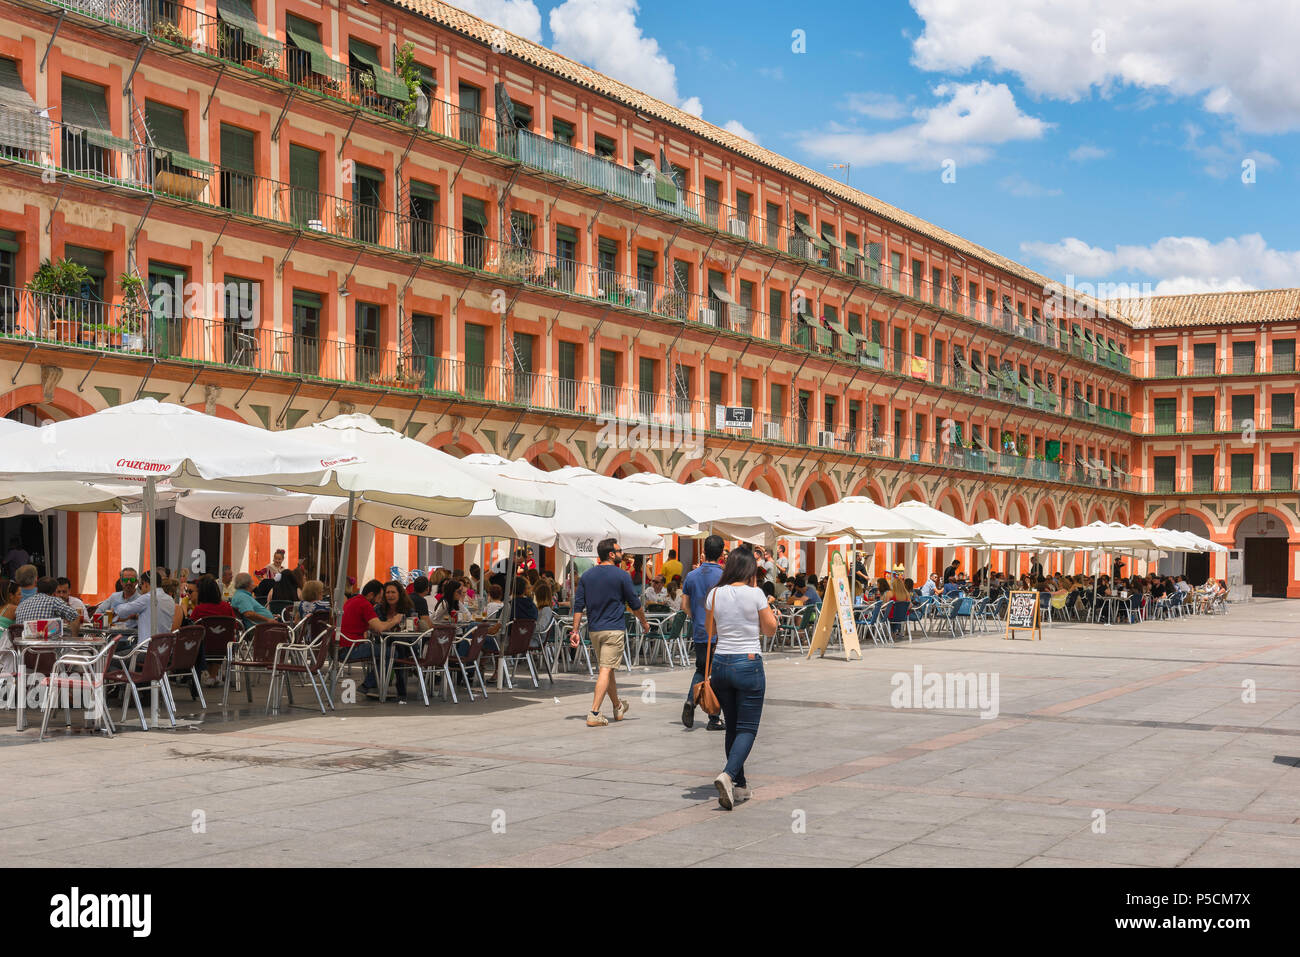 Plaza Corredera cafe, view of cafes in the Plaza de la Corredera in the center of Cordoba old town on a summer afternoon, Cordova, Andalucia, Spain. Stock Photo